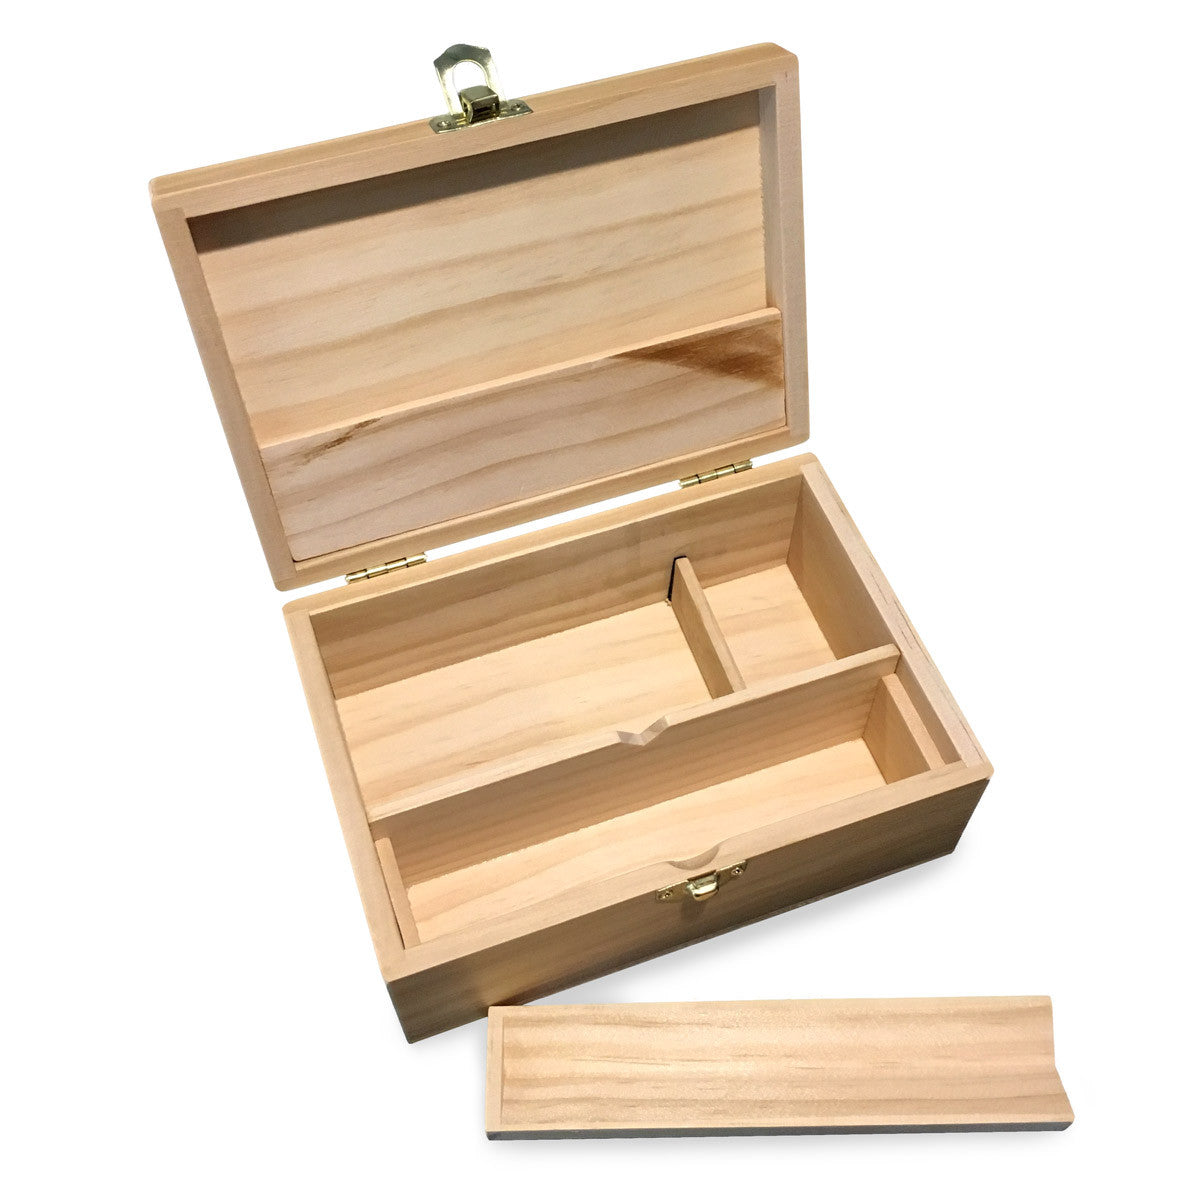 Medium Wooden Storage Box W/ Latching Lid and Rolling Jig